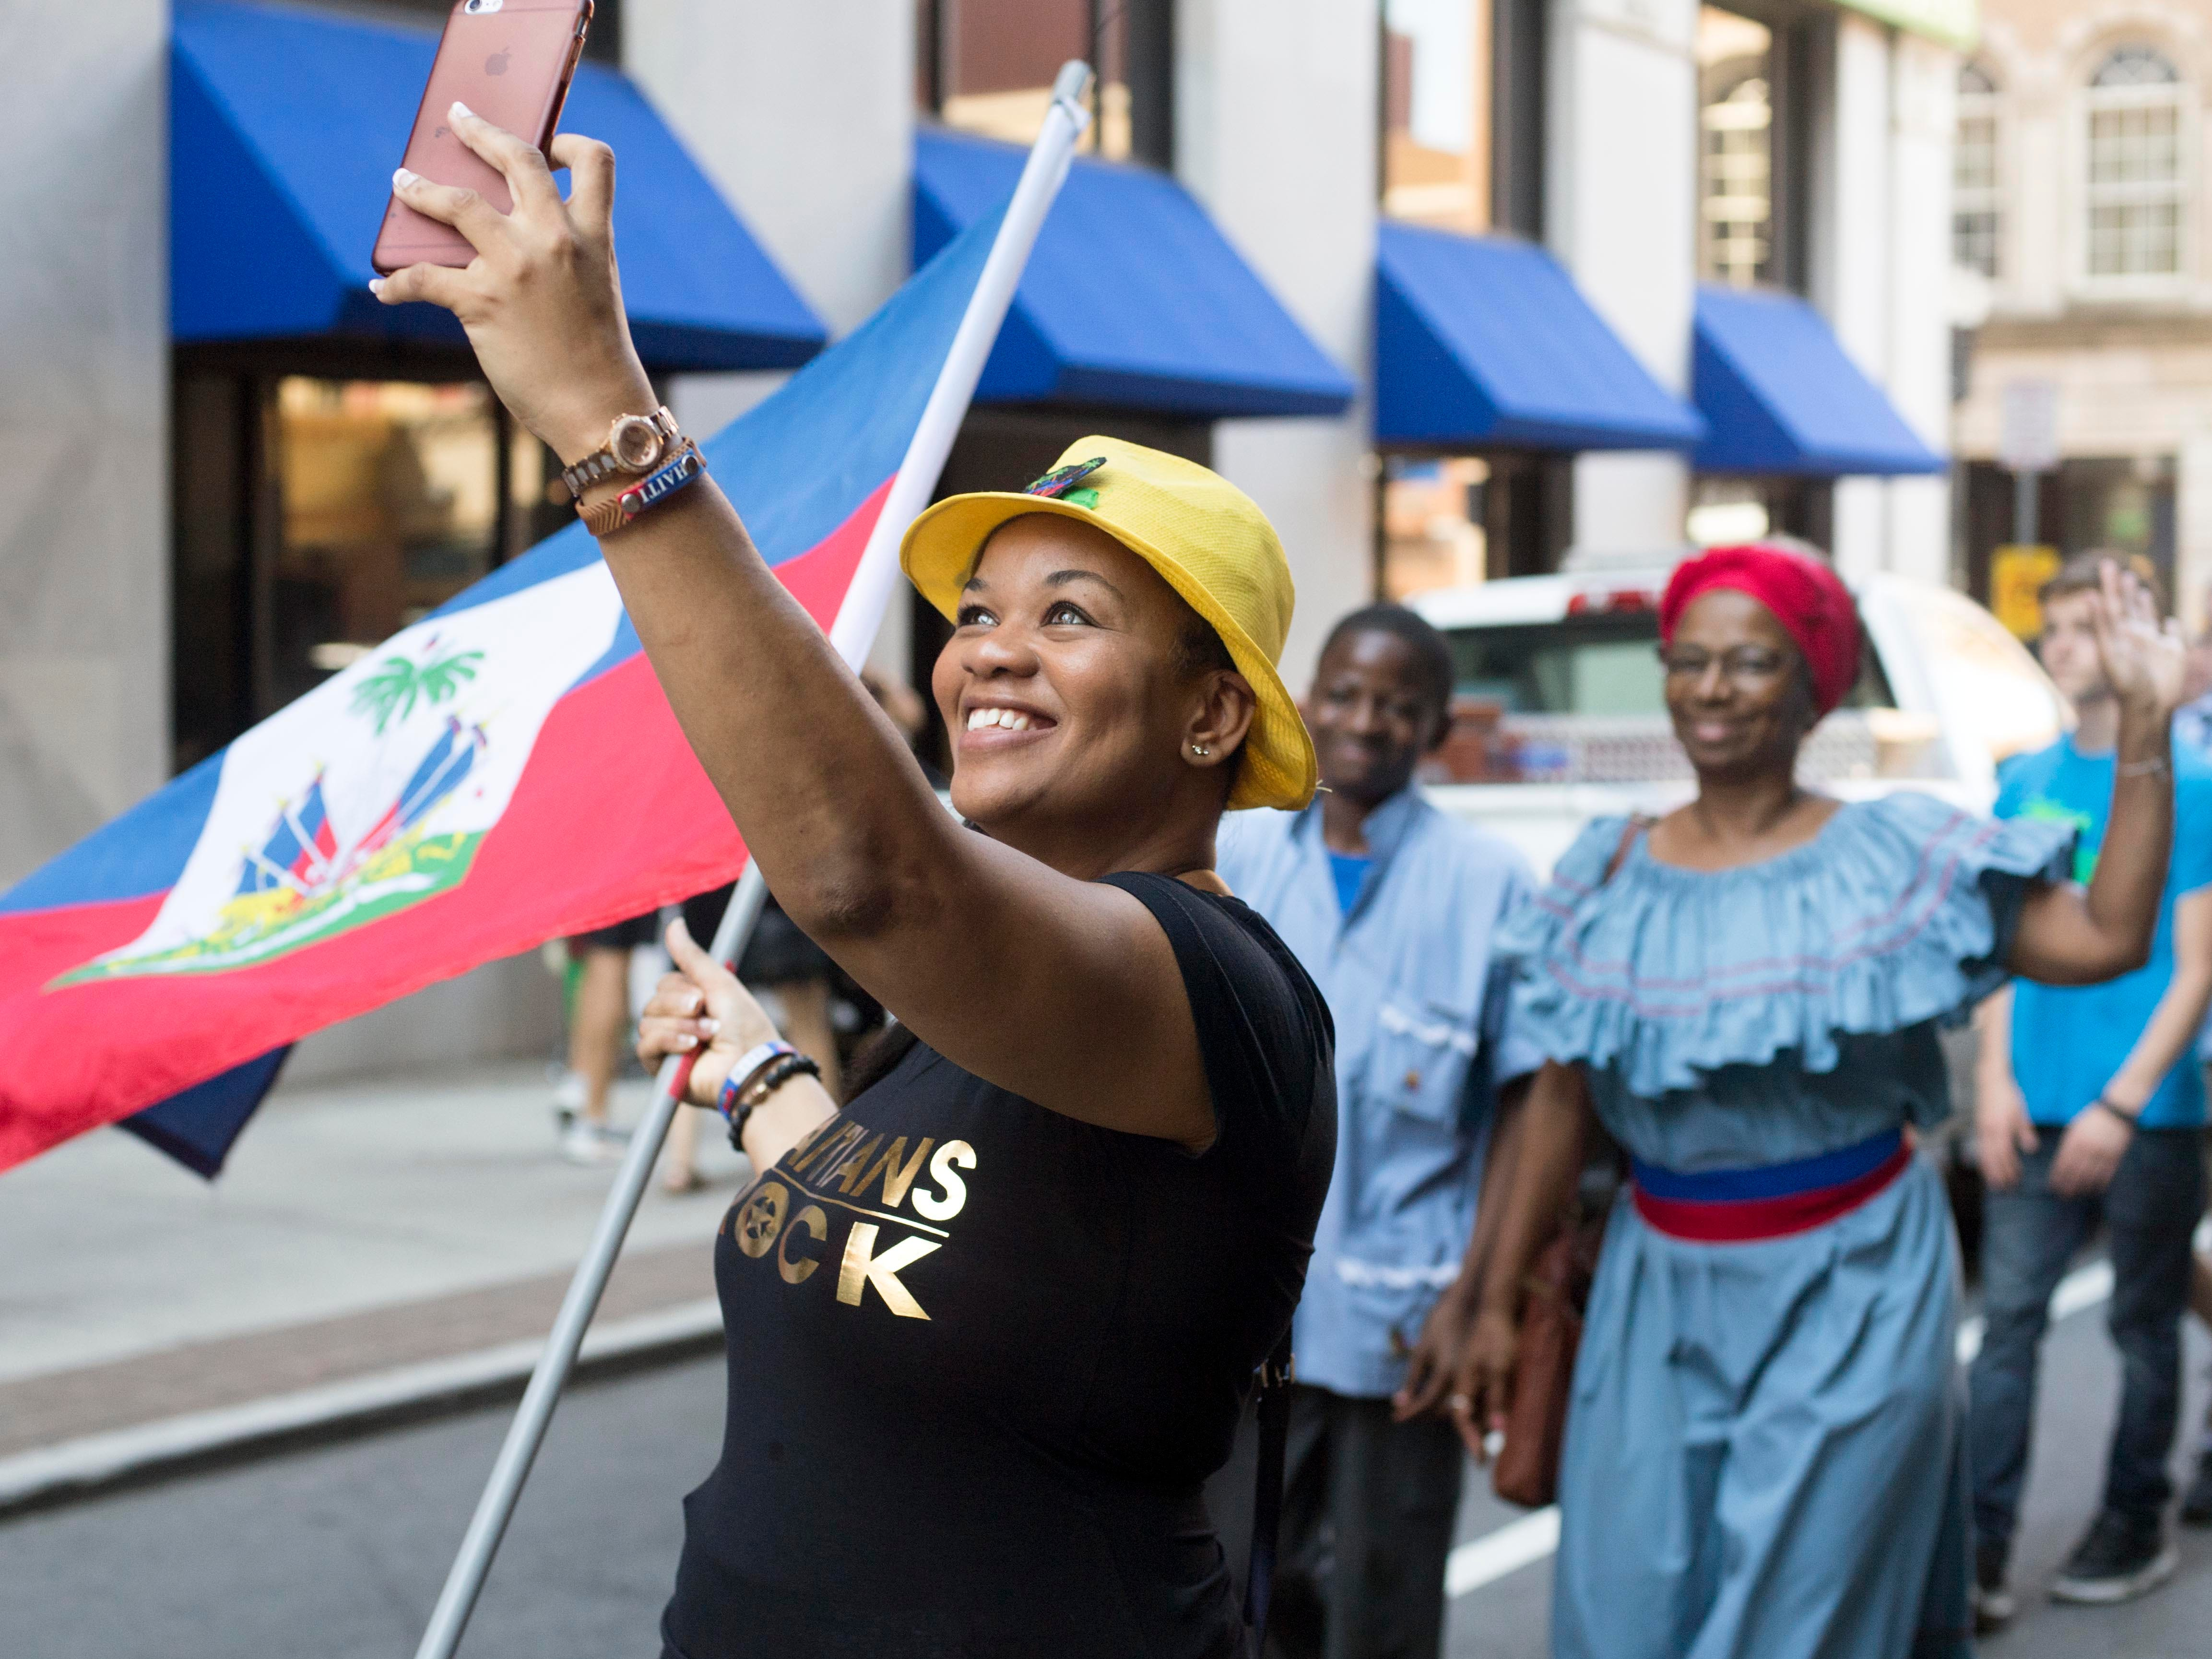 Stephanie Hall photographs herself with the Haitian flag and is participating in the HoLa Festival's Parade of Nations at Market Square on Sunday, September 30, 2018.